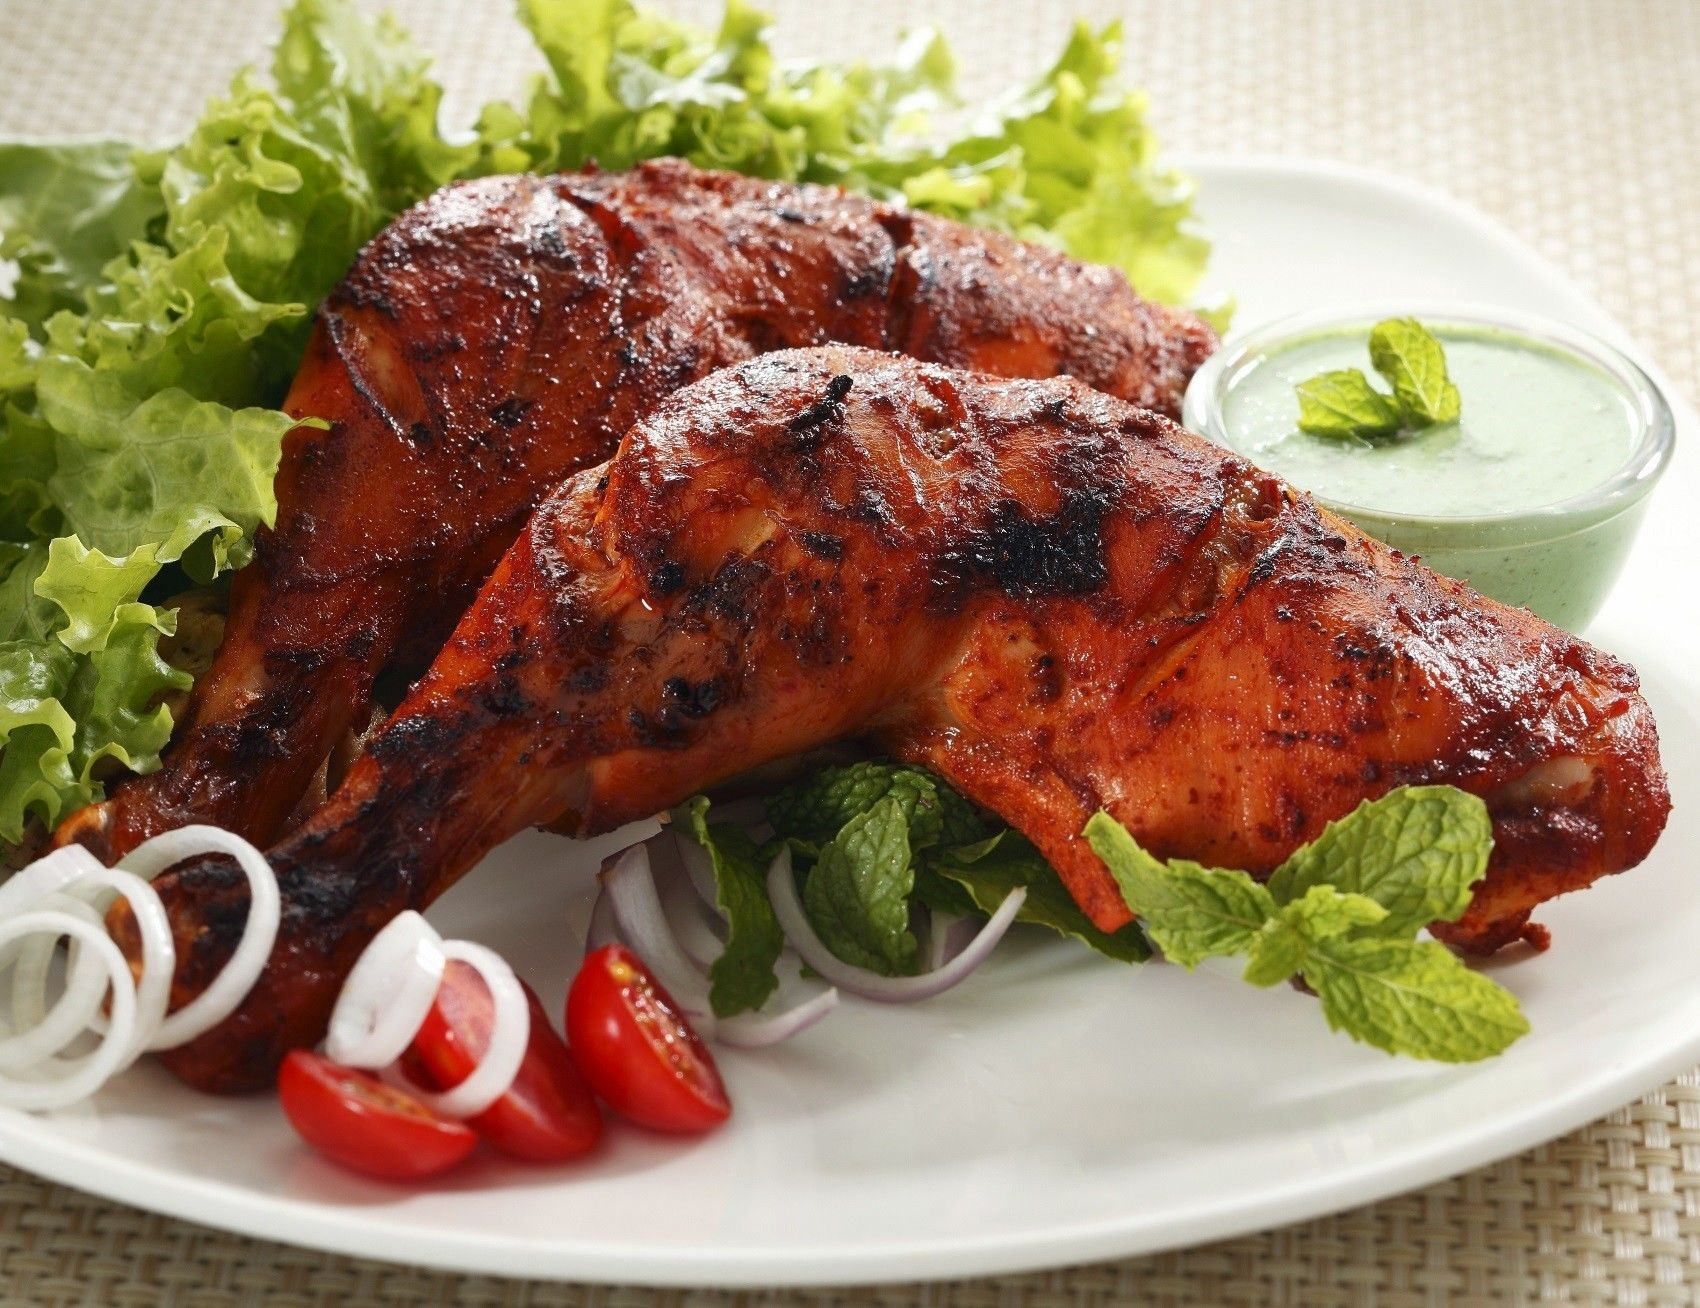 Eat Tandoori Chicken when you travel to India